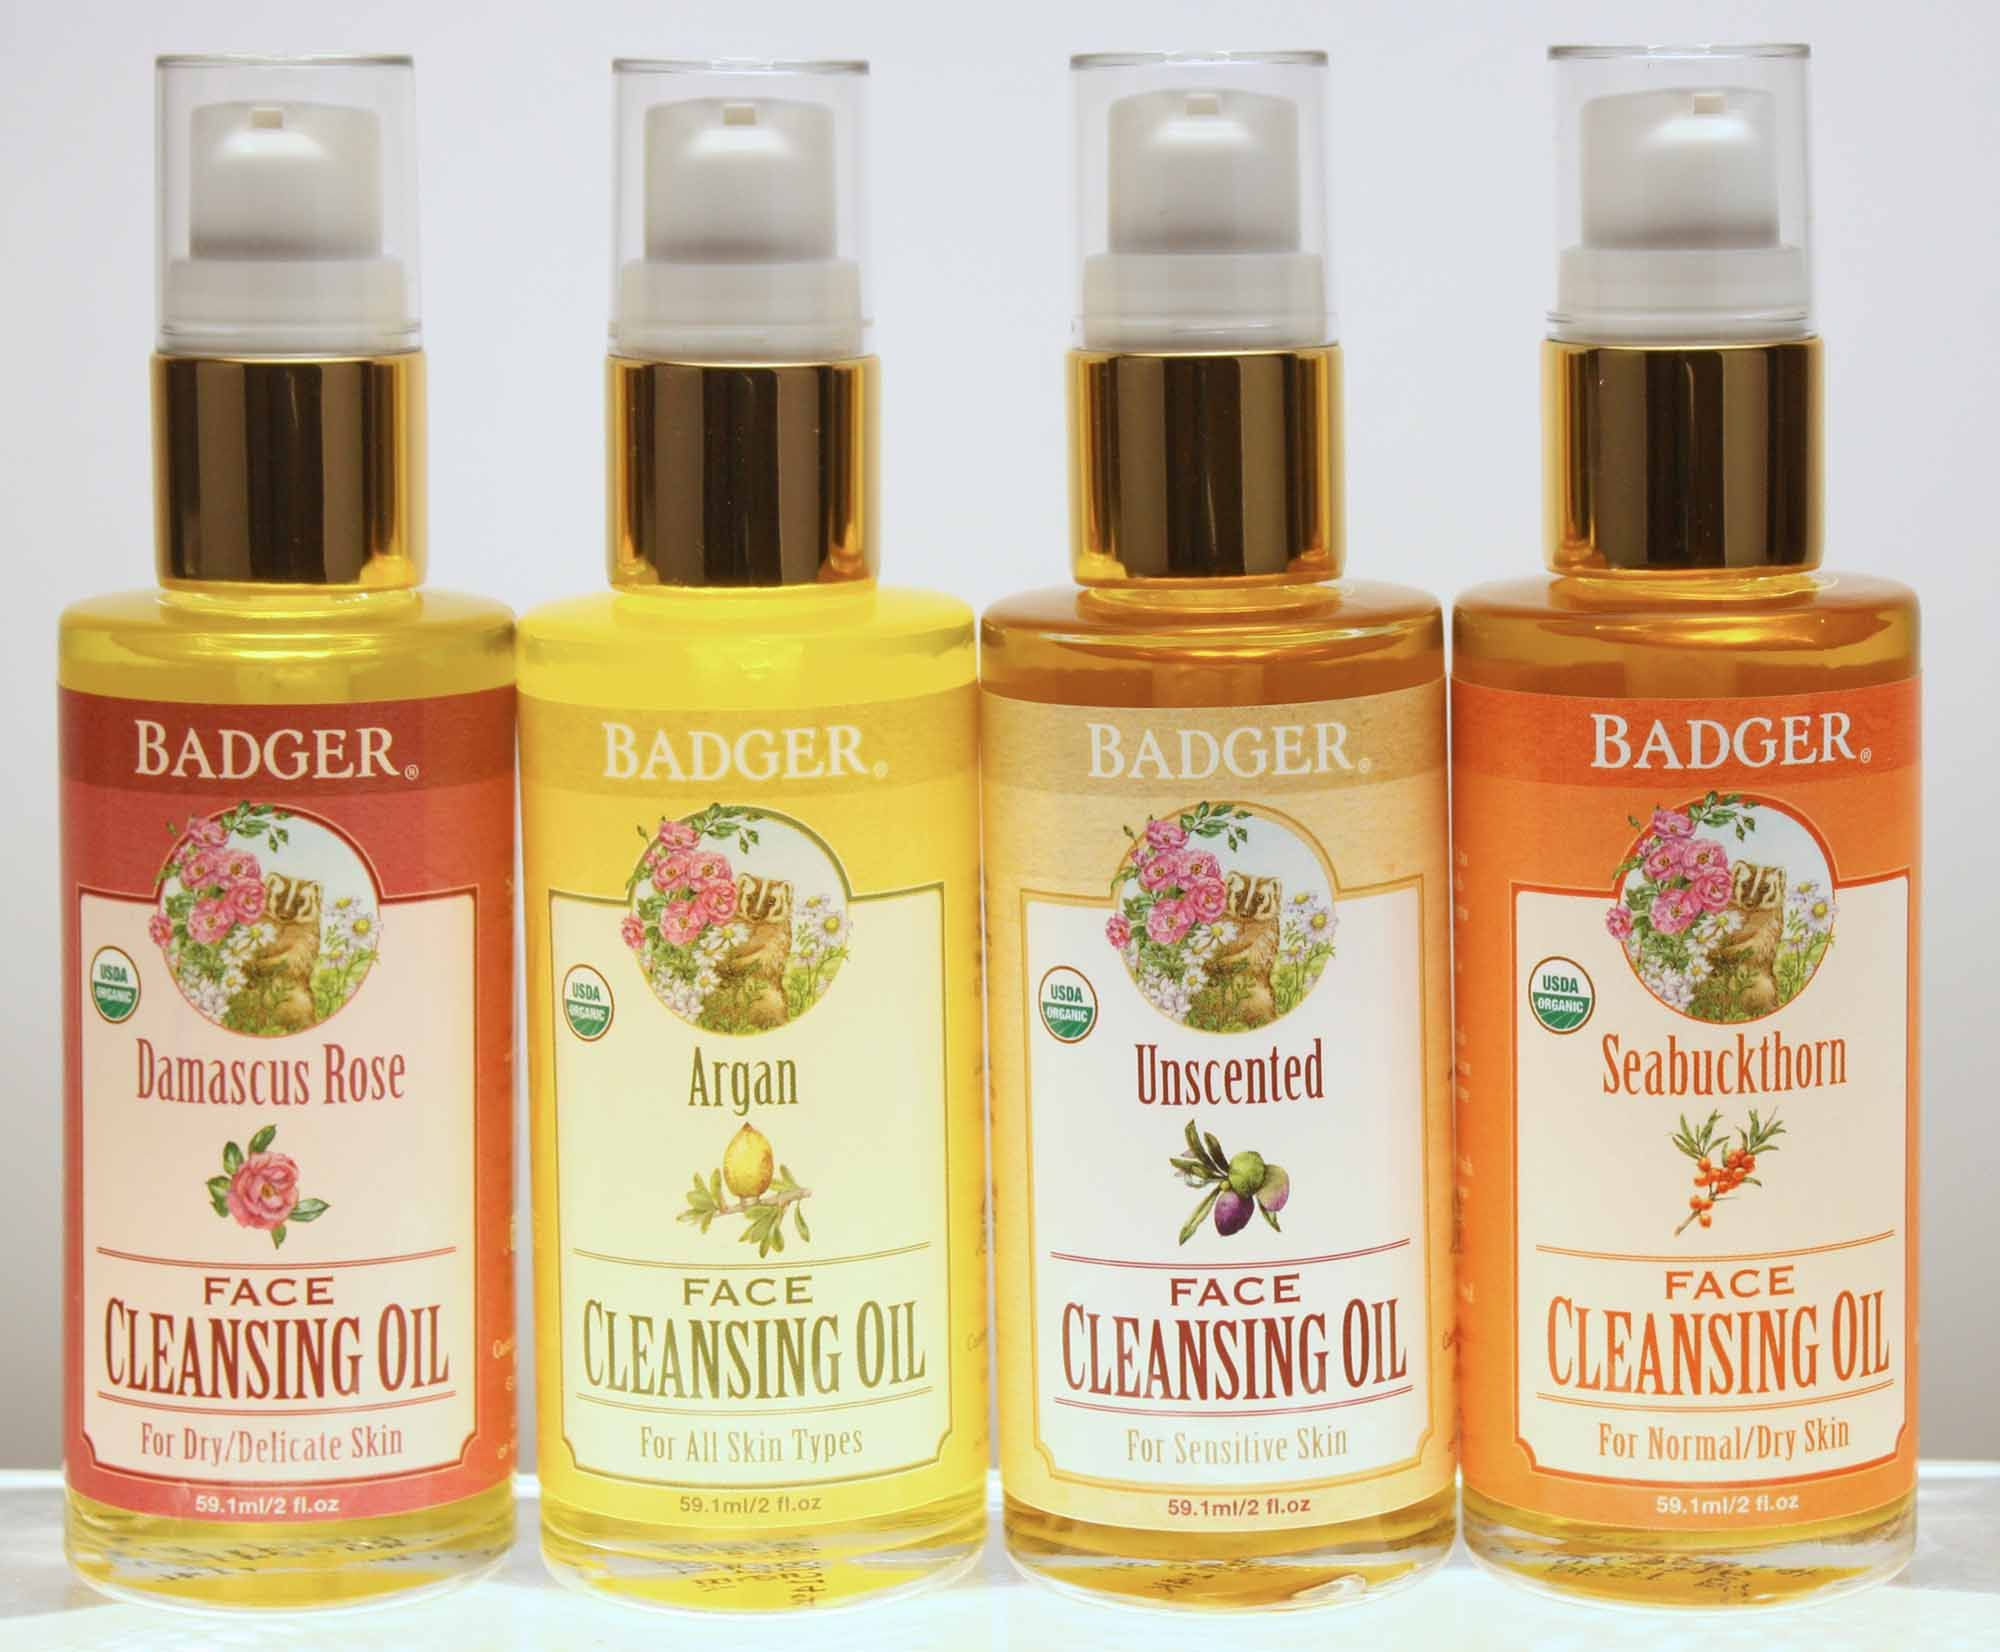 Finding your match how to choose the right oil cleanser